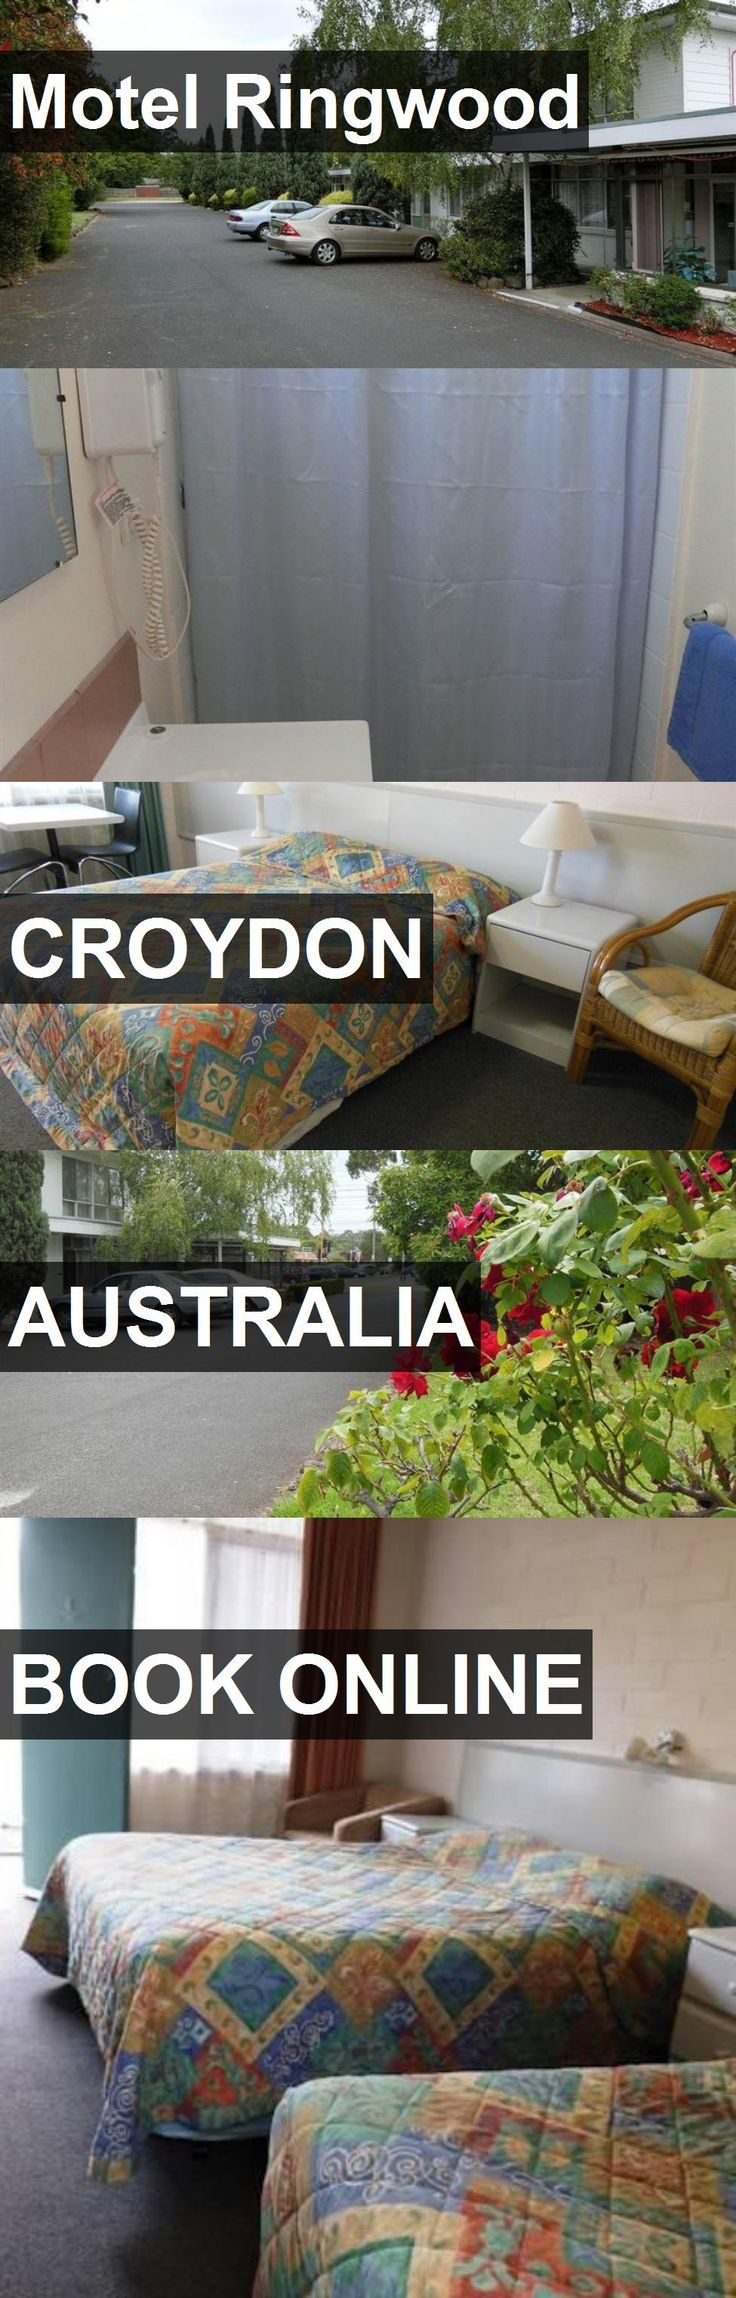 Hotel Motel Ringwood in Croydon, Australia. For more information, photos, reviews and best prices please follow the link. #Australia #Croydon #MotelRingwood #hotel #travel #vacation